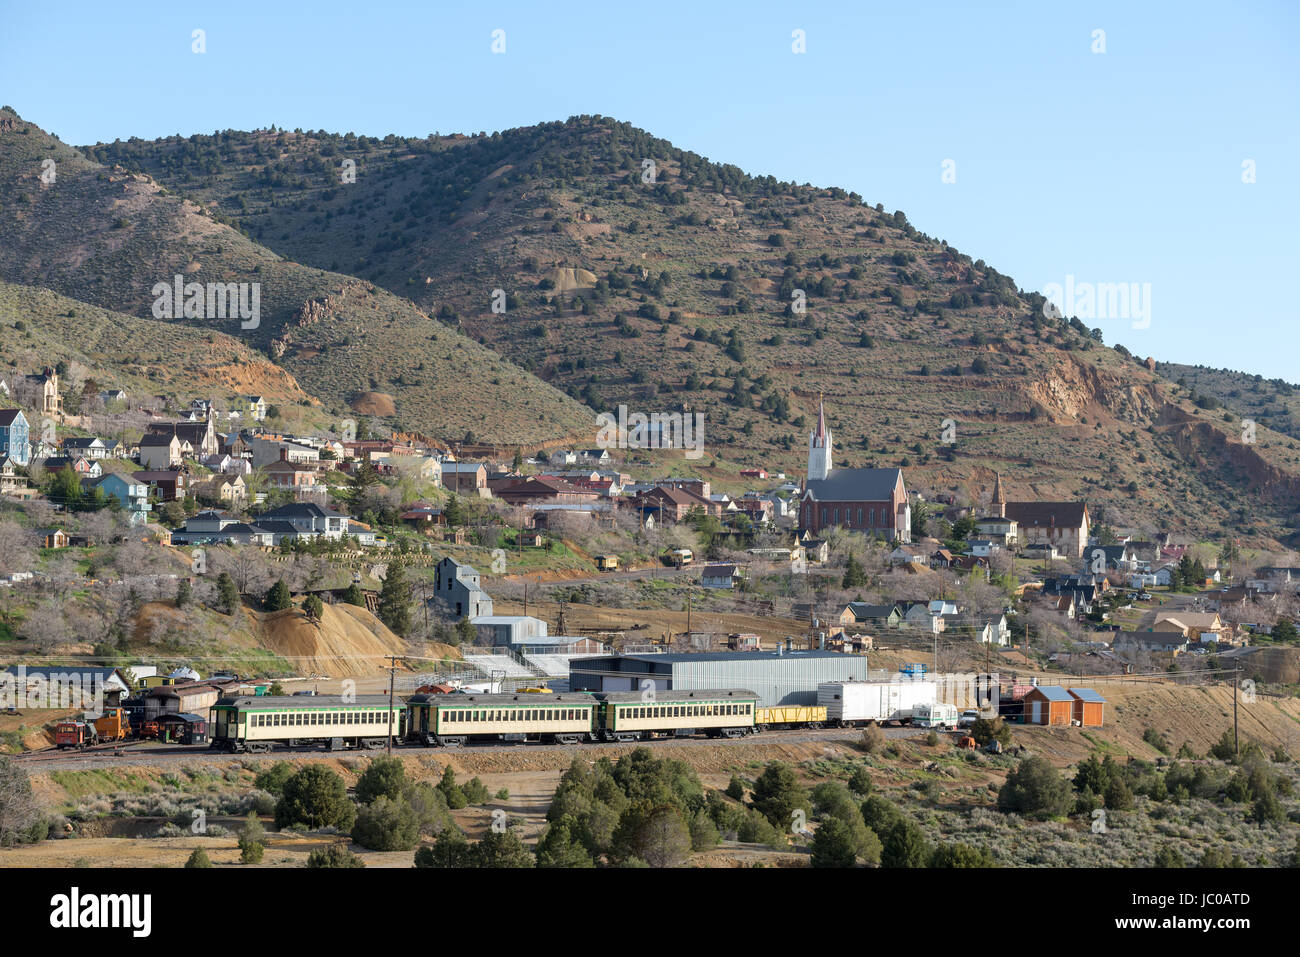 Virginia and Truckee Railroad yard and the historic mining town of Virginia City, Nevada. - Stock Image